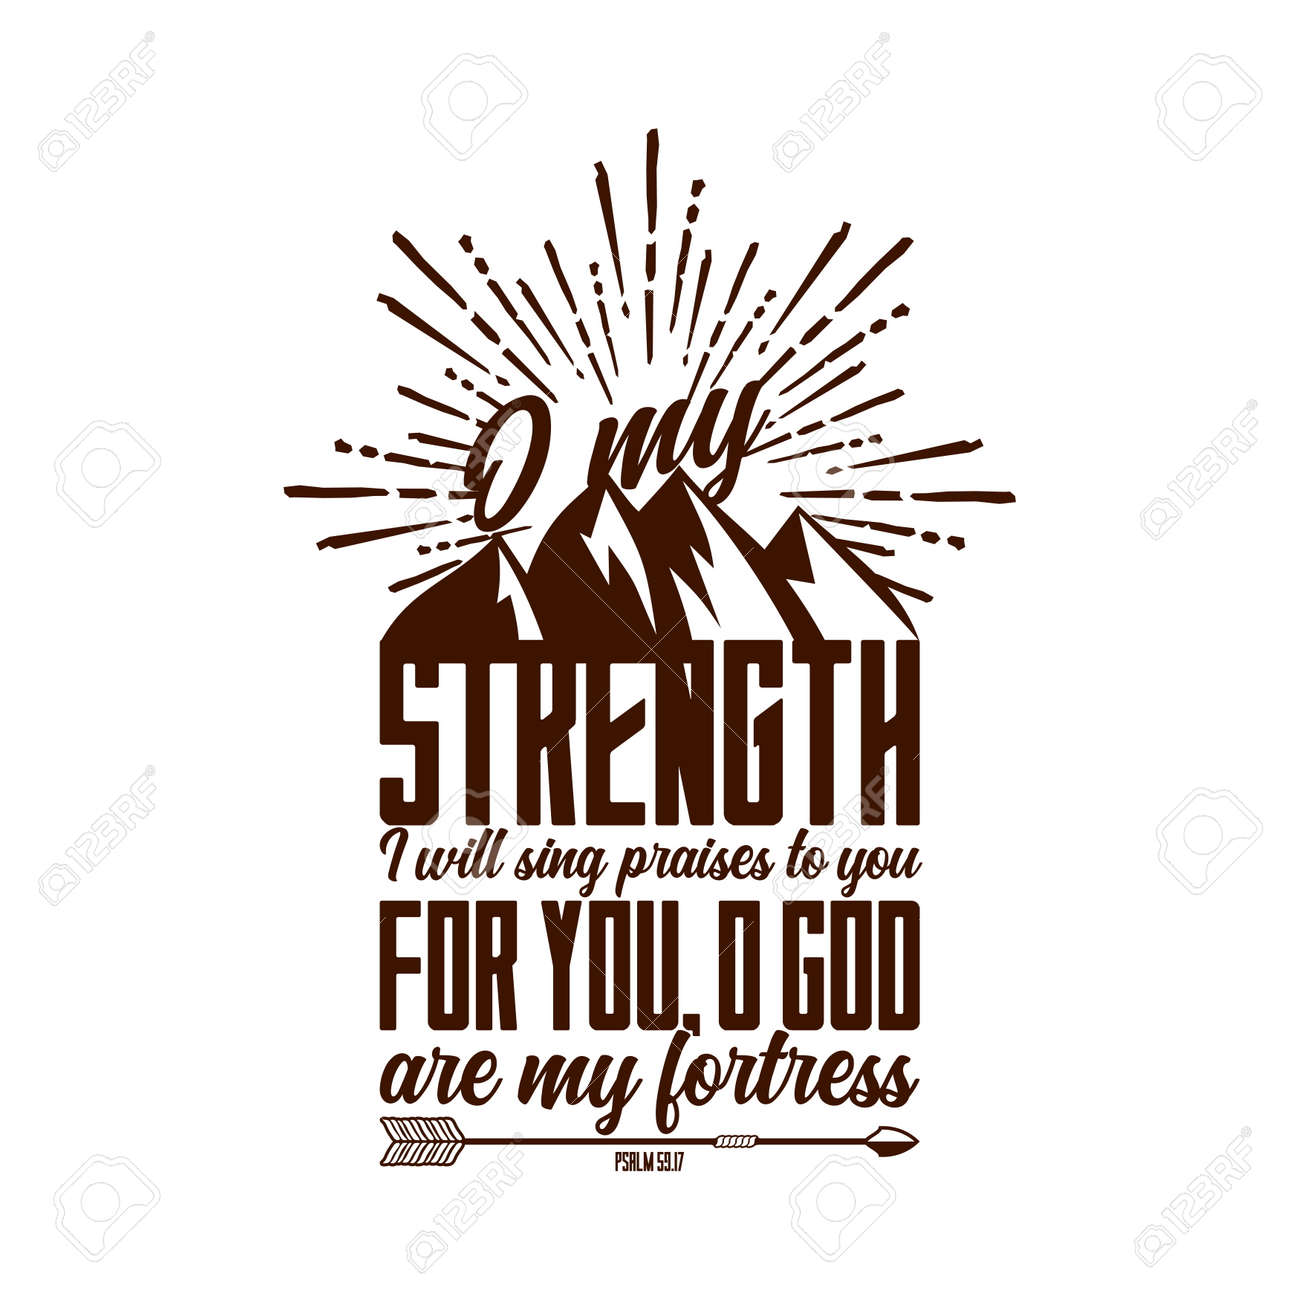 Christian typography and lettering. Biblical illustration. O my strenght. - 126893399